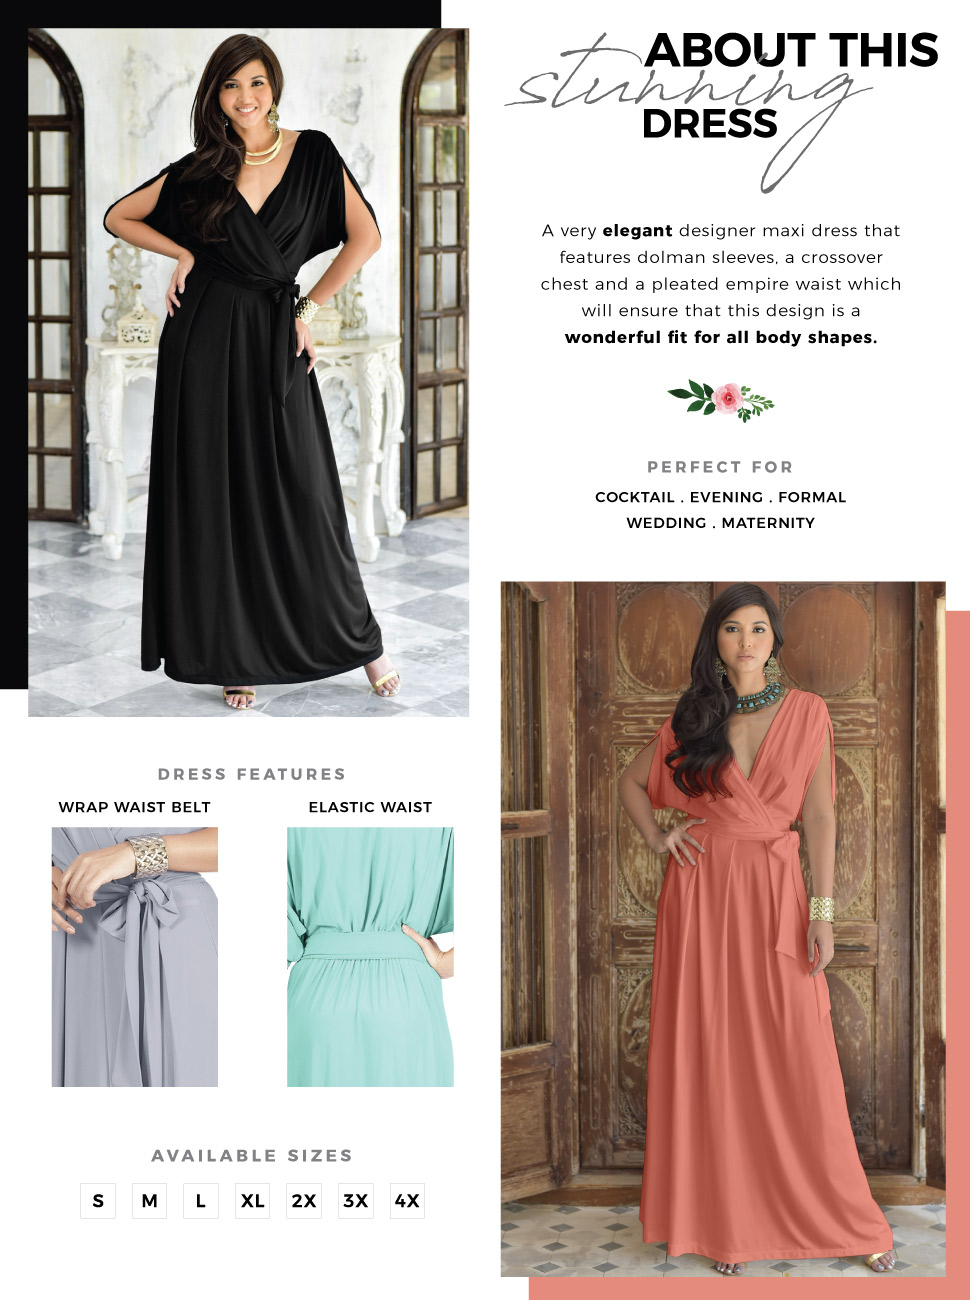 880f4e880 Formal Short Sleeve Cocktail Flowy V-Neck Gown. womens ladies elegant  stunning maxi dress midi dresses jumpsuits offshoulder maternity evening  style